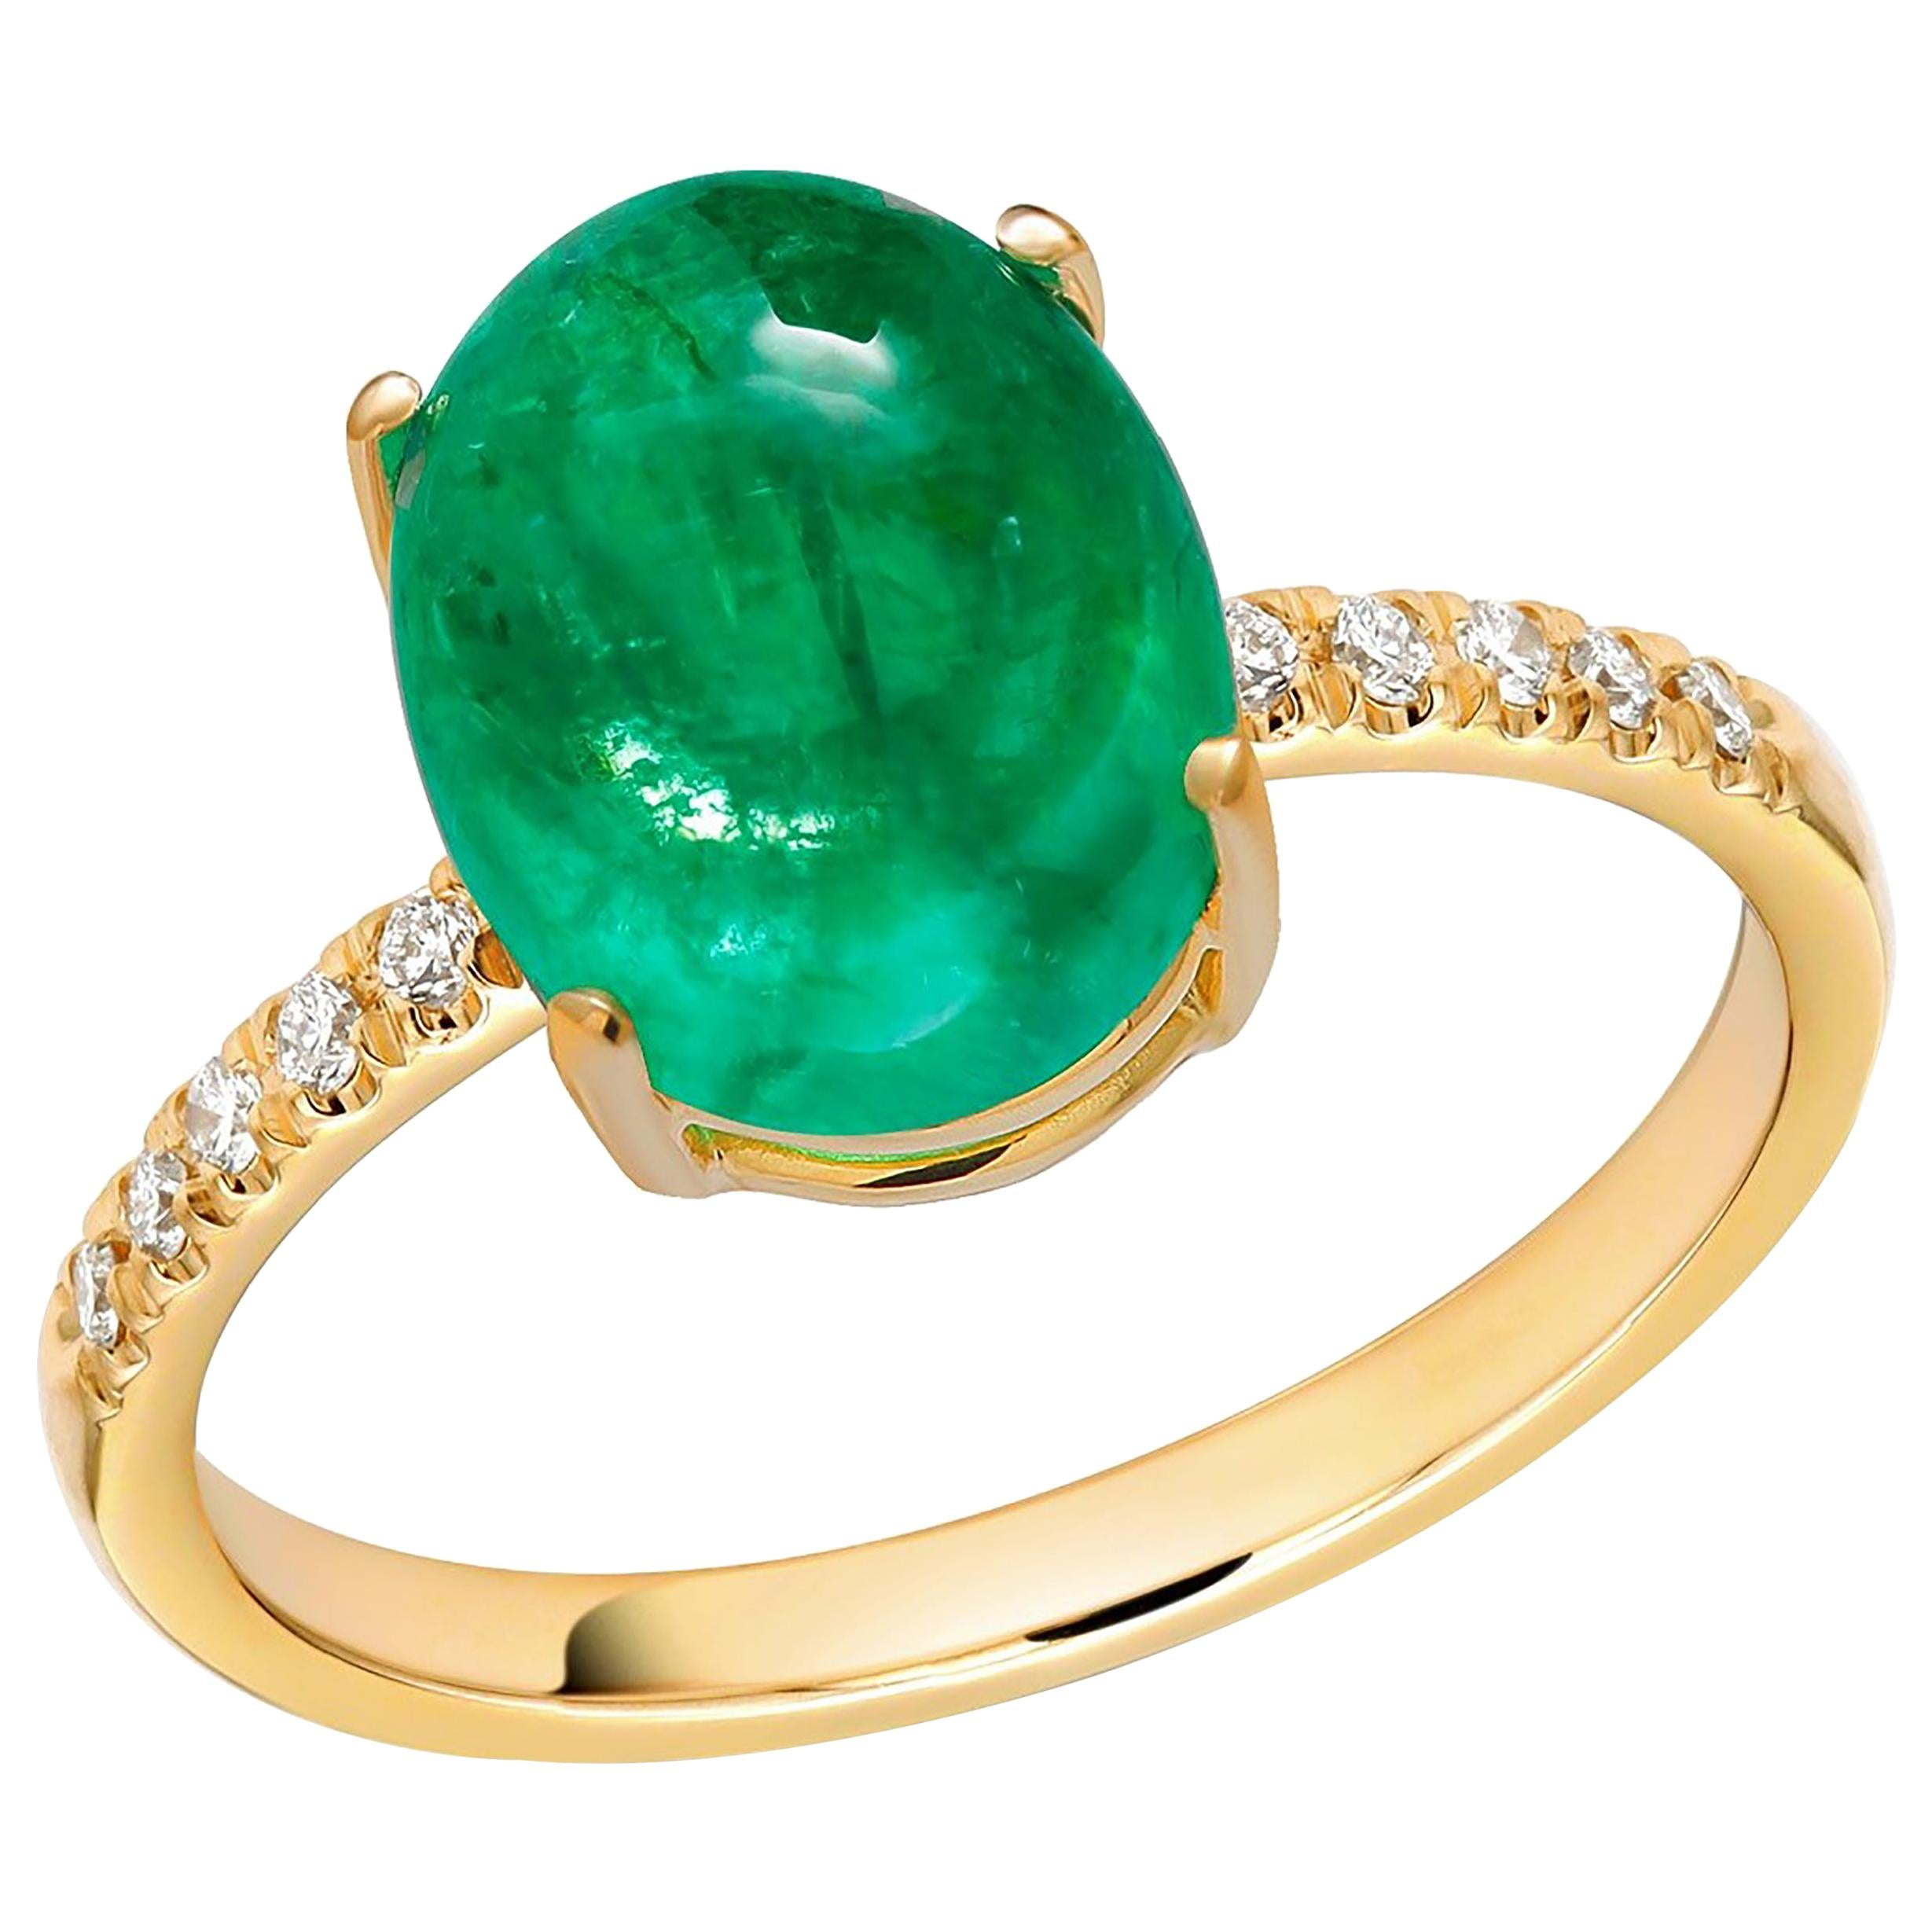 Cabochon Emerald and Diamonds Yellow Gold Cocktail Ring Weighing 7.05 Carat